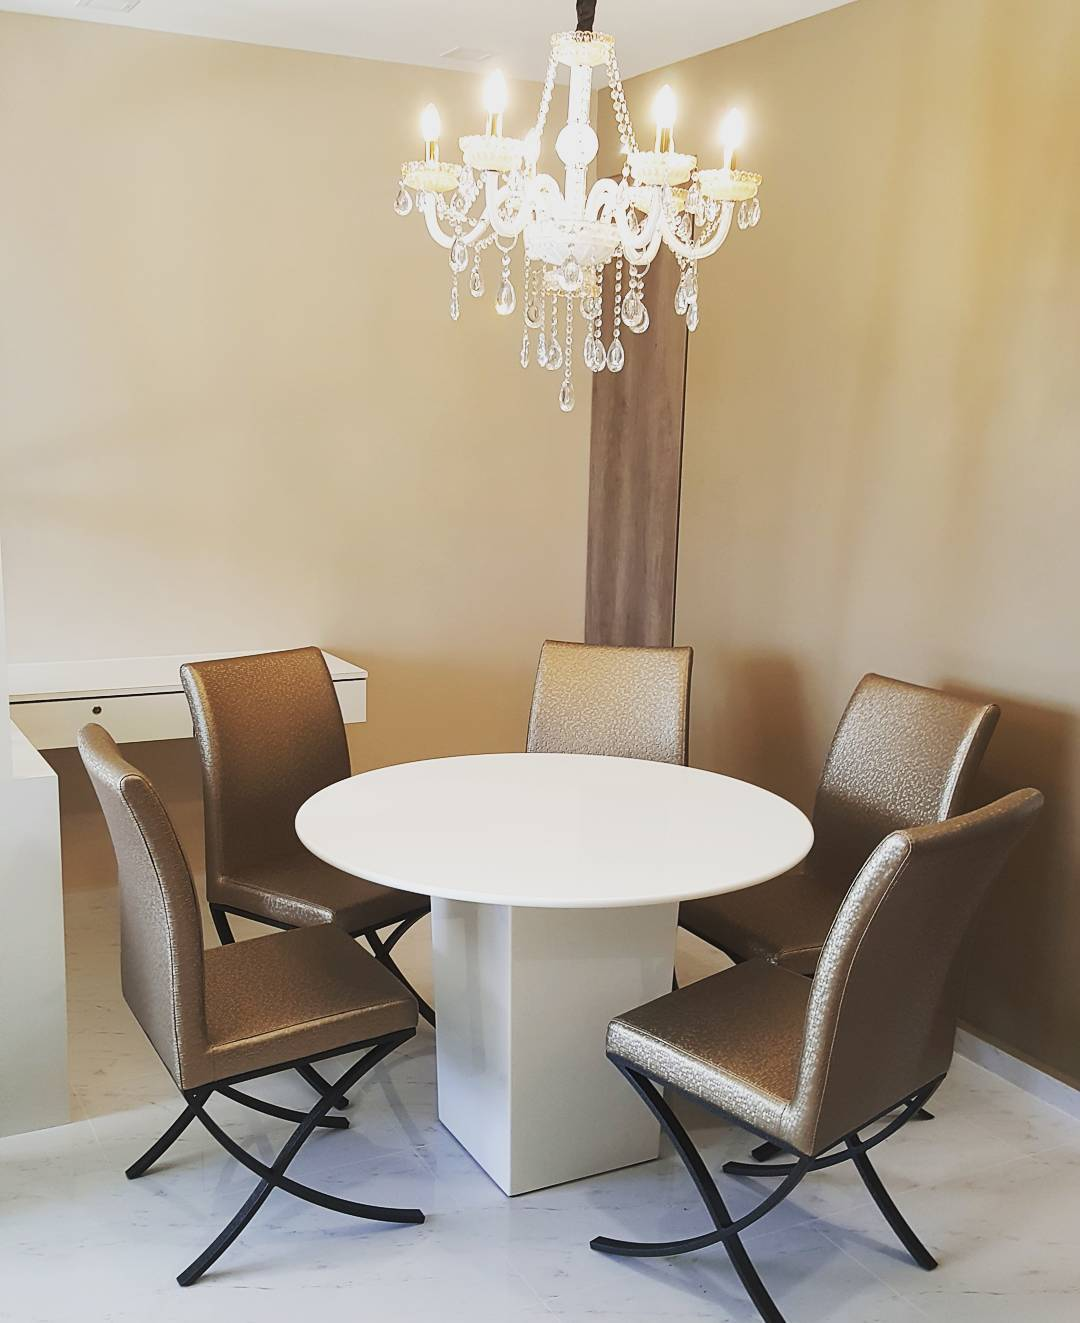 round-dining-tables-2